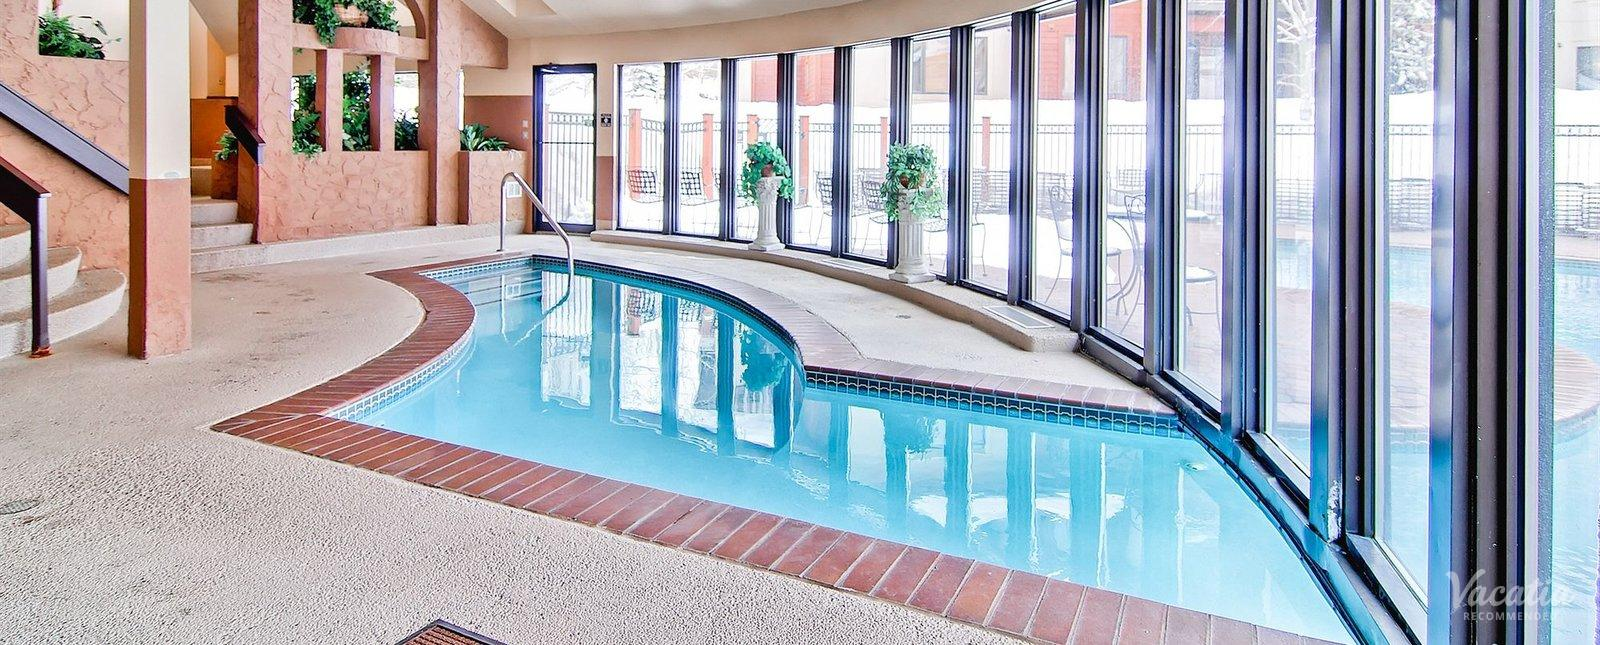 Trappeur S Crossing Resort Spa Ski Rentals